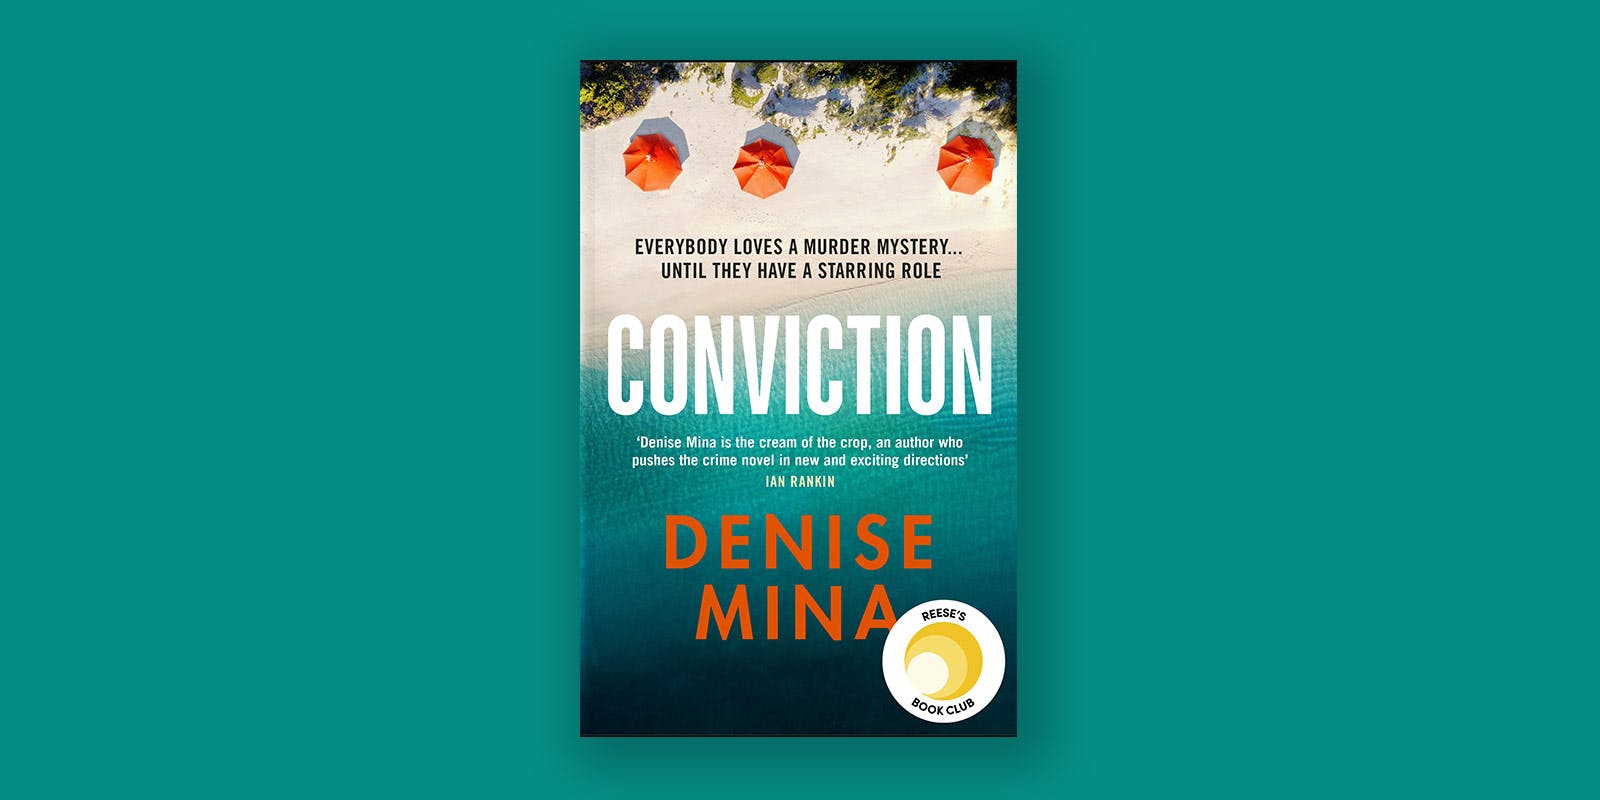 Conviction book club notes